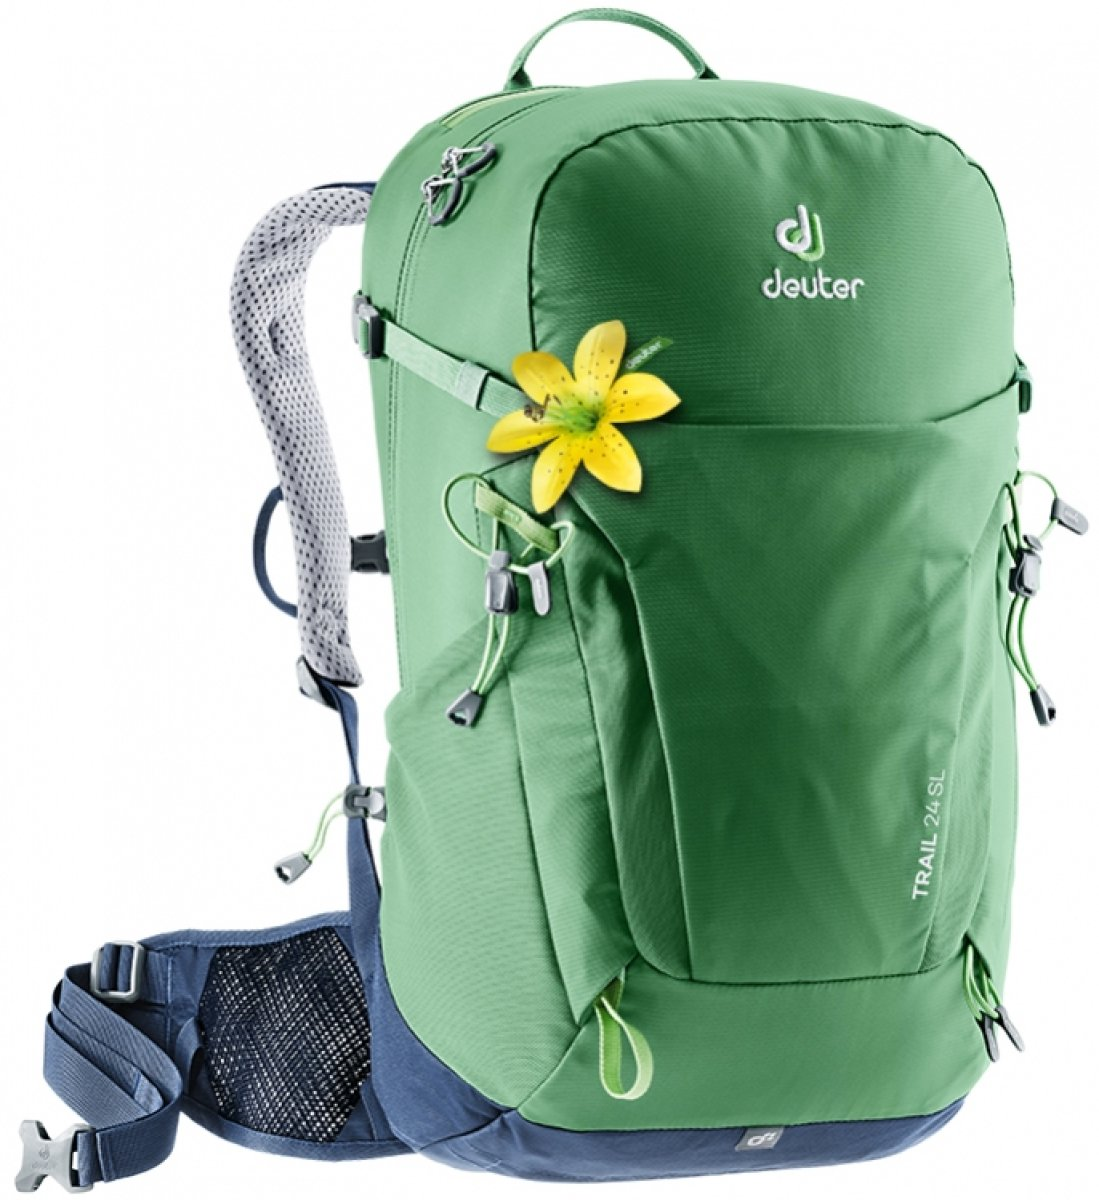 Рюкзак Deuter Trail 24 SL цвет 2326 leaf-navy 2 Рюкзак Deu1ter Trail 24 SL цвет 2326 leaf-navy 3440219 2326